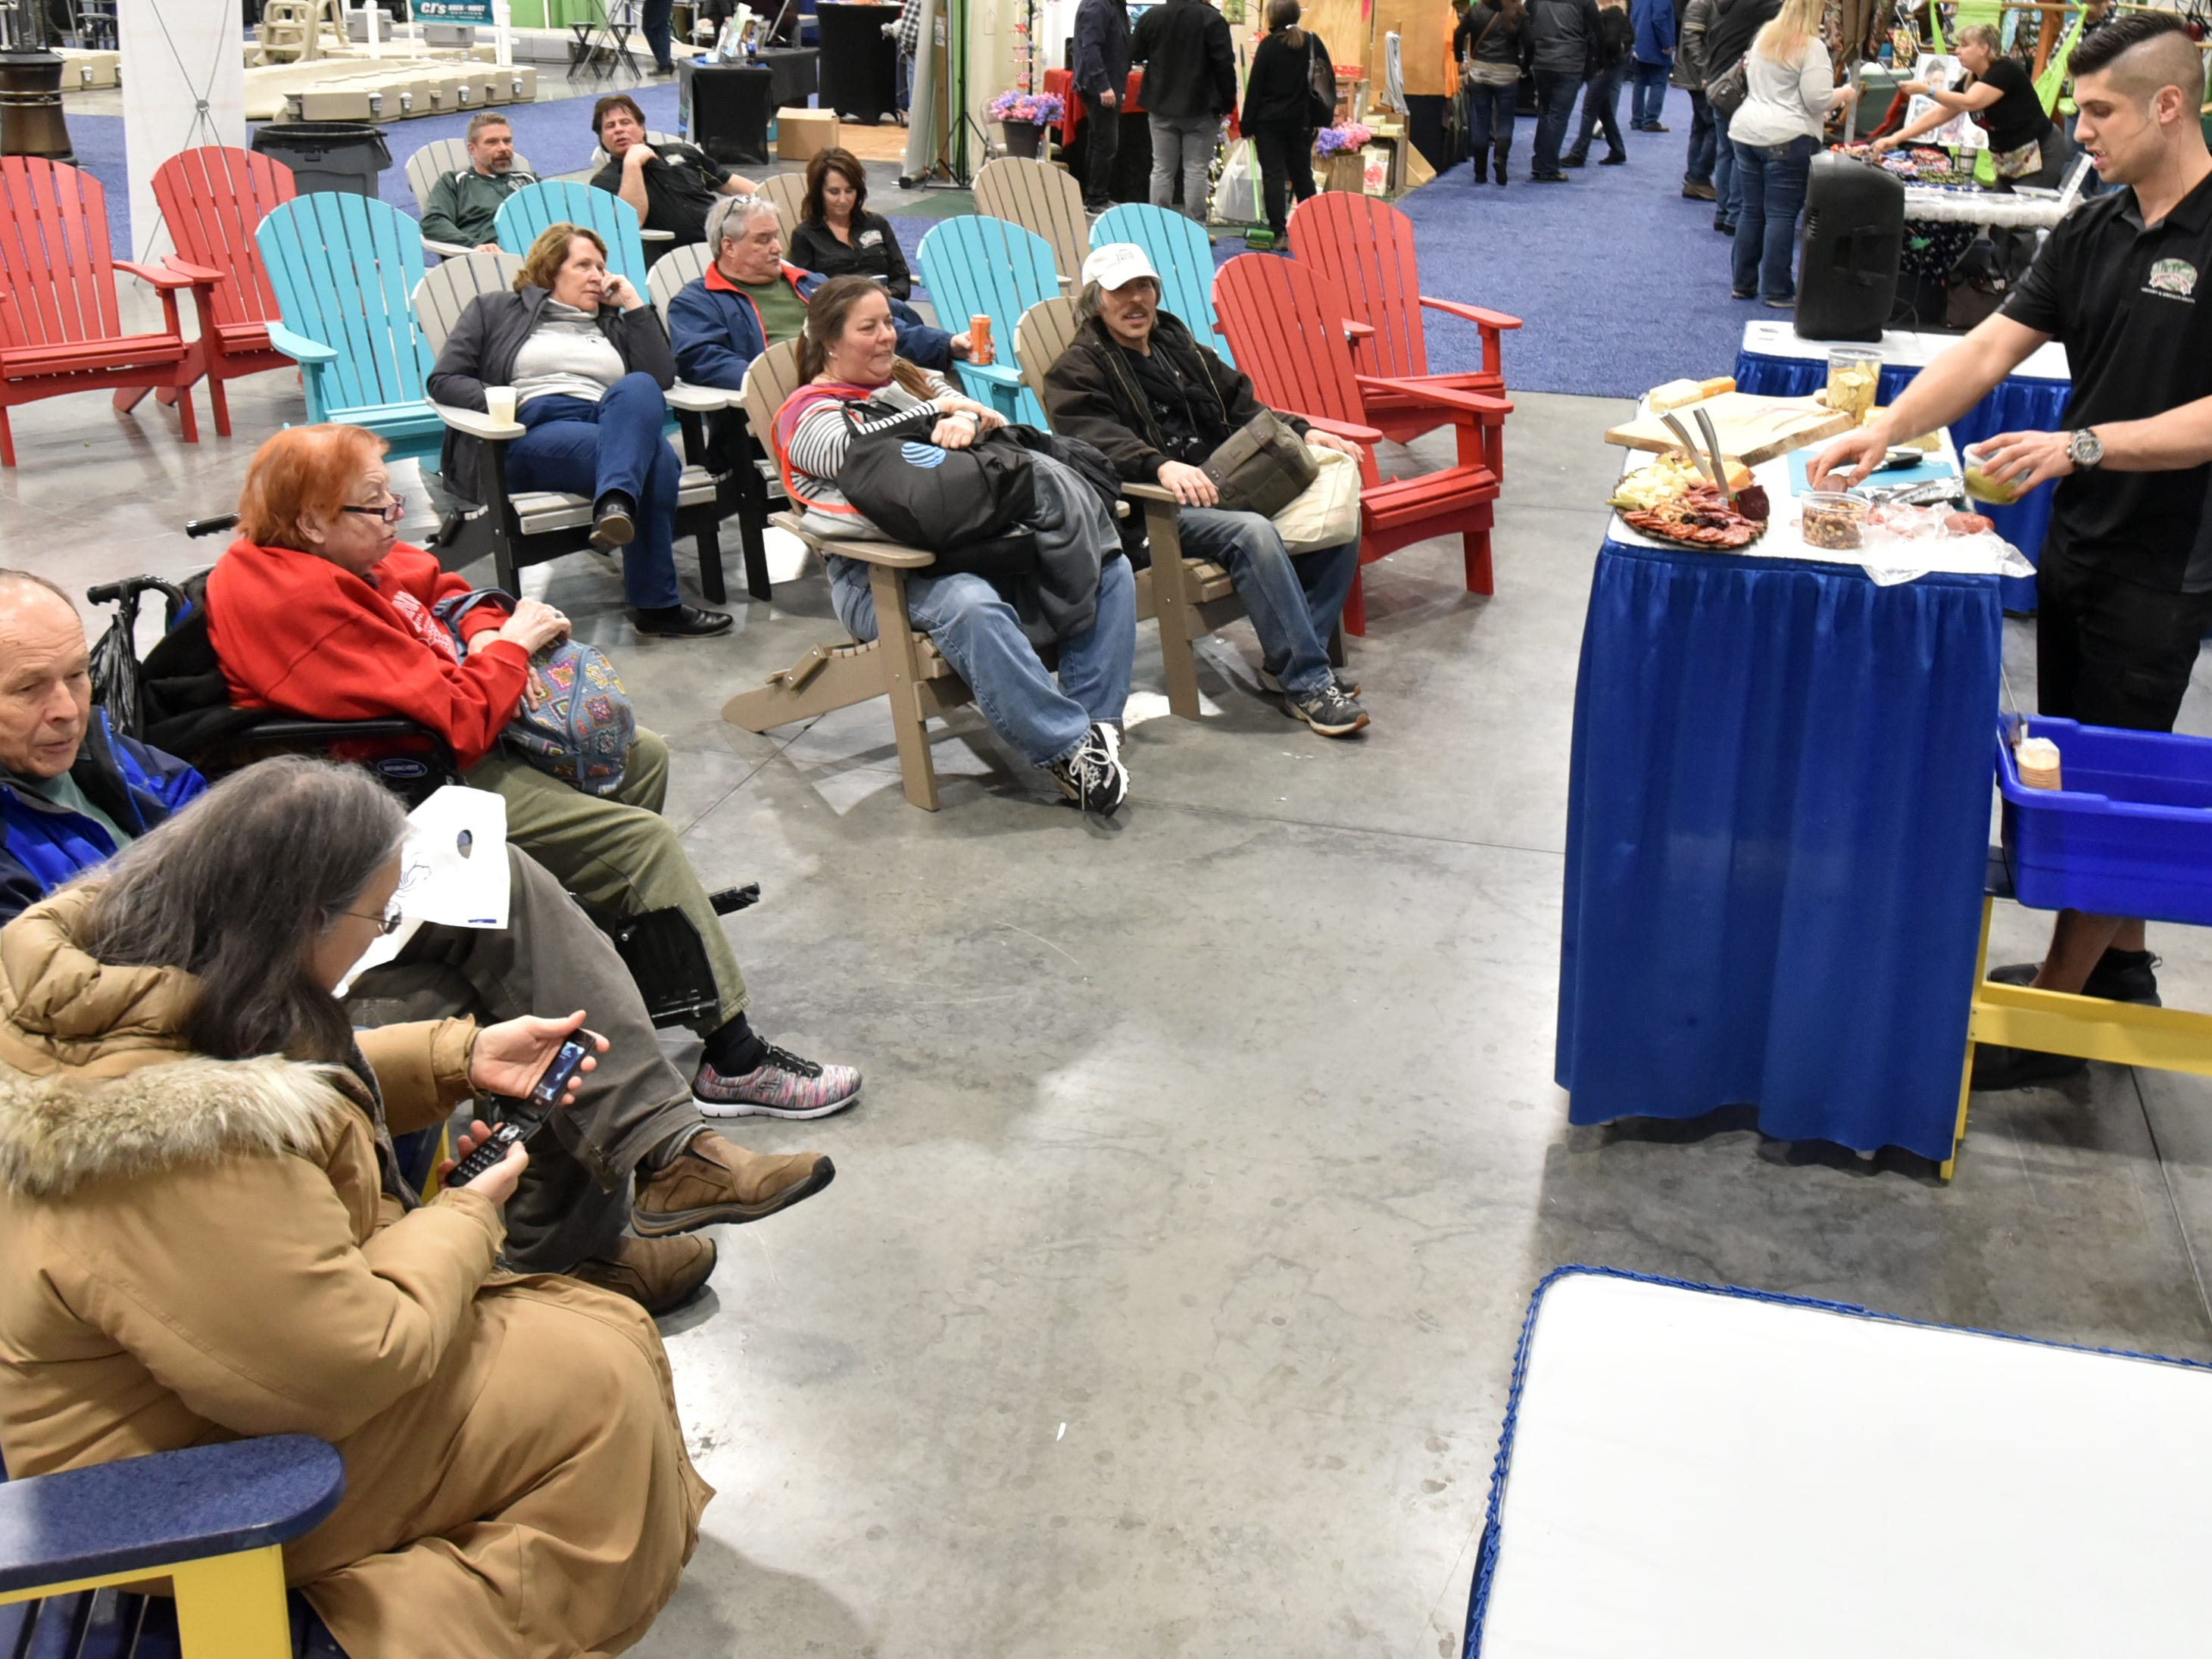 Visitors to the March 2nd Outdoorama at Novi's Outdoorama relax in some Adirondack-style chairs as they watch a culinary exhibit.